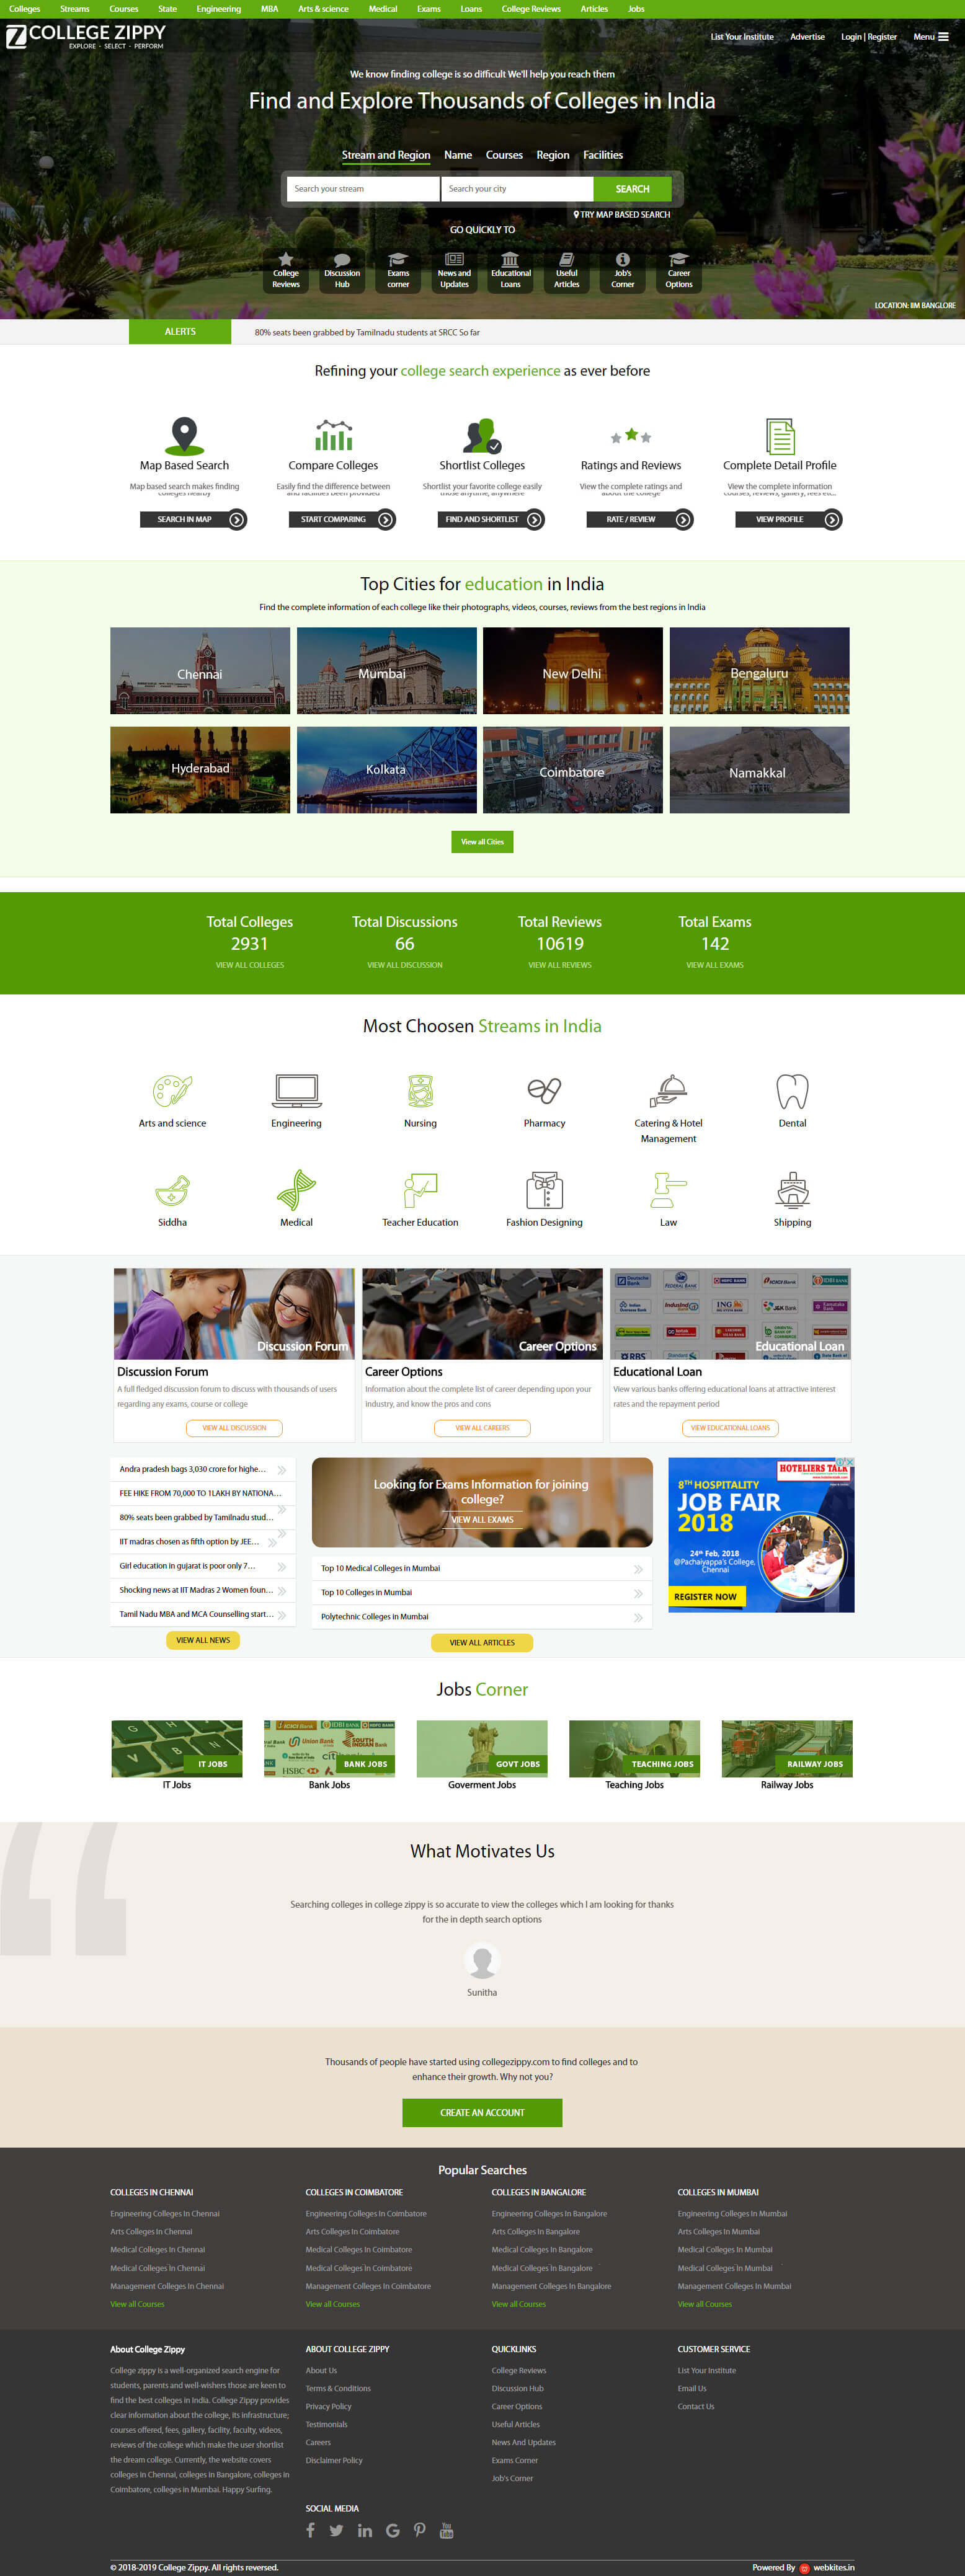 CollegeSignal website developed at web designing company in chennai